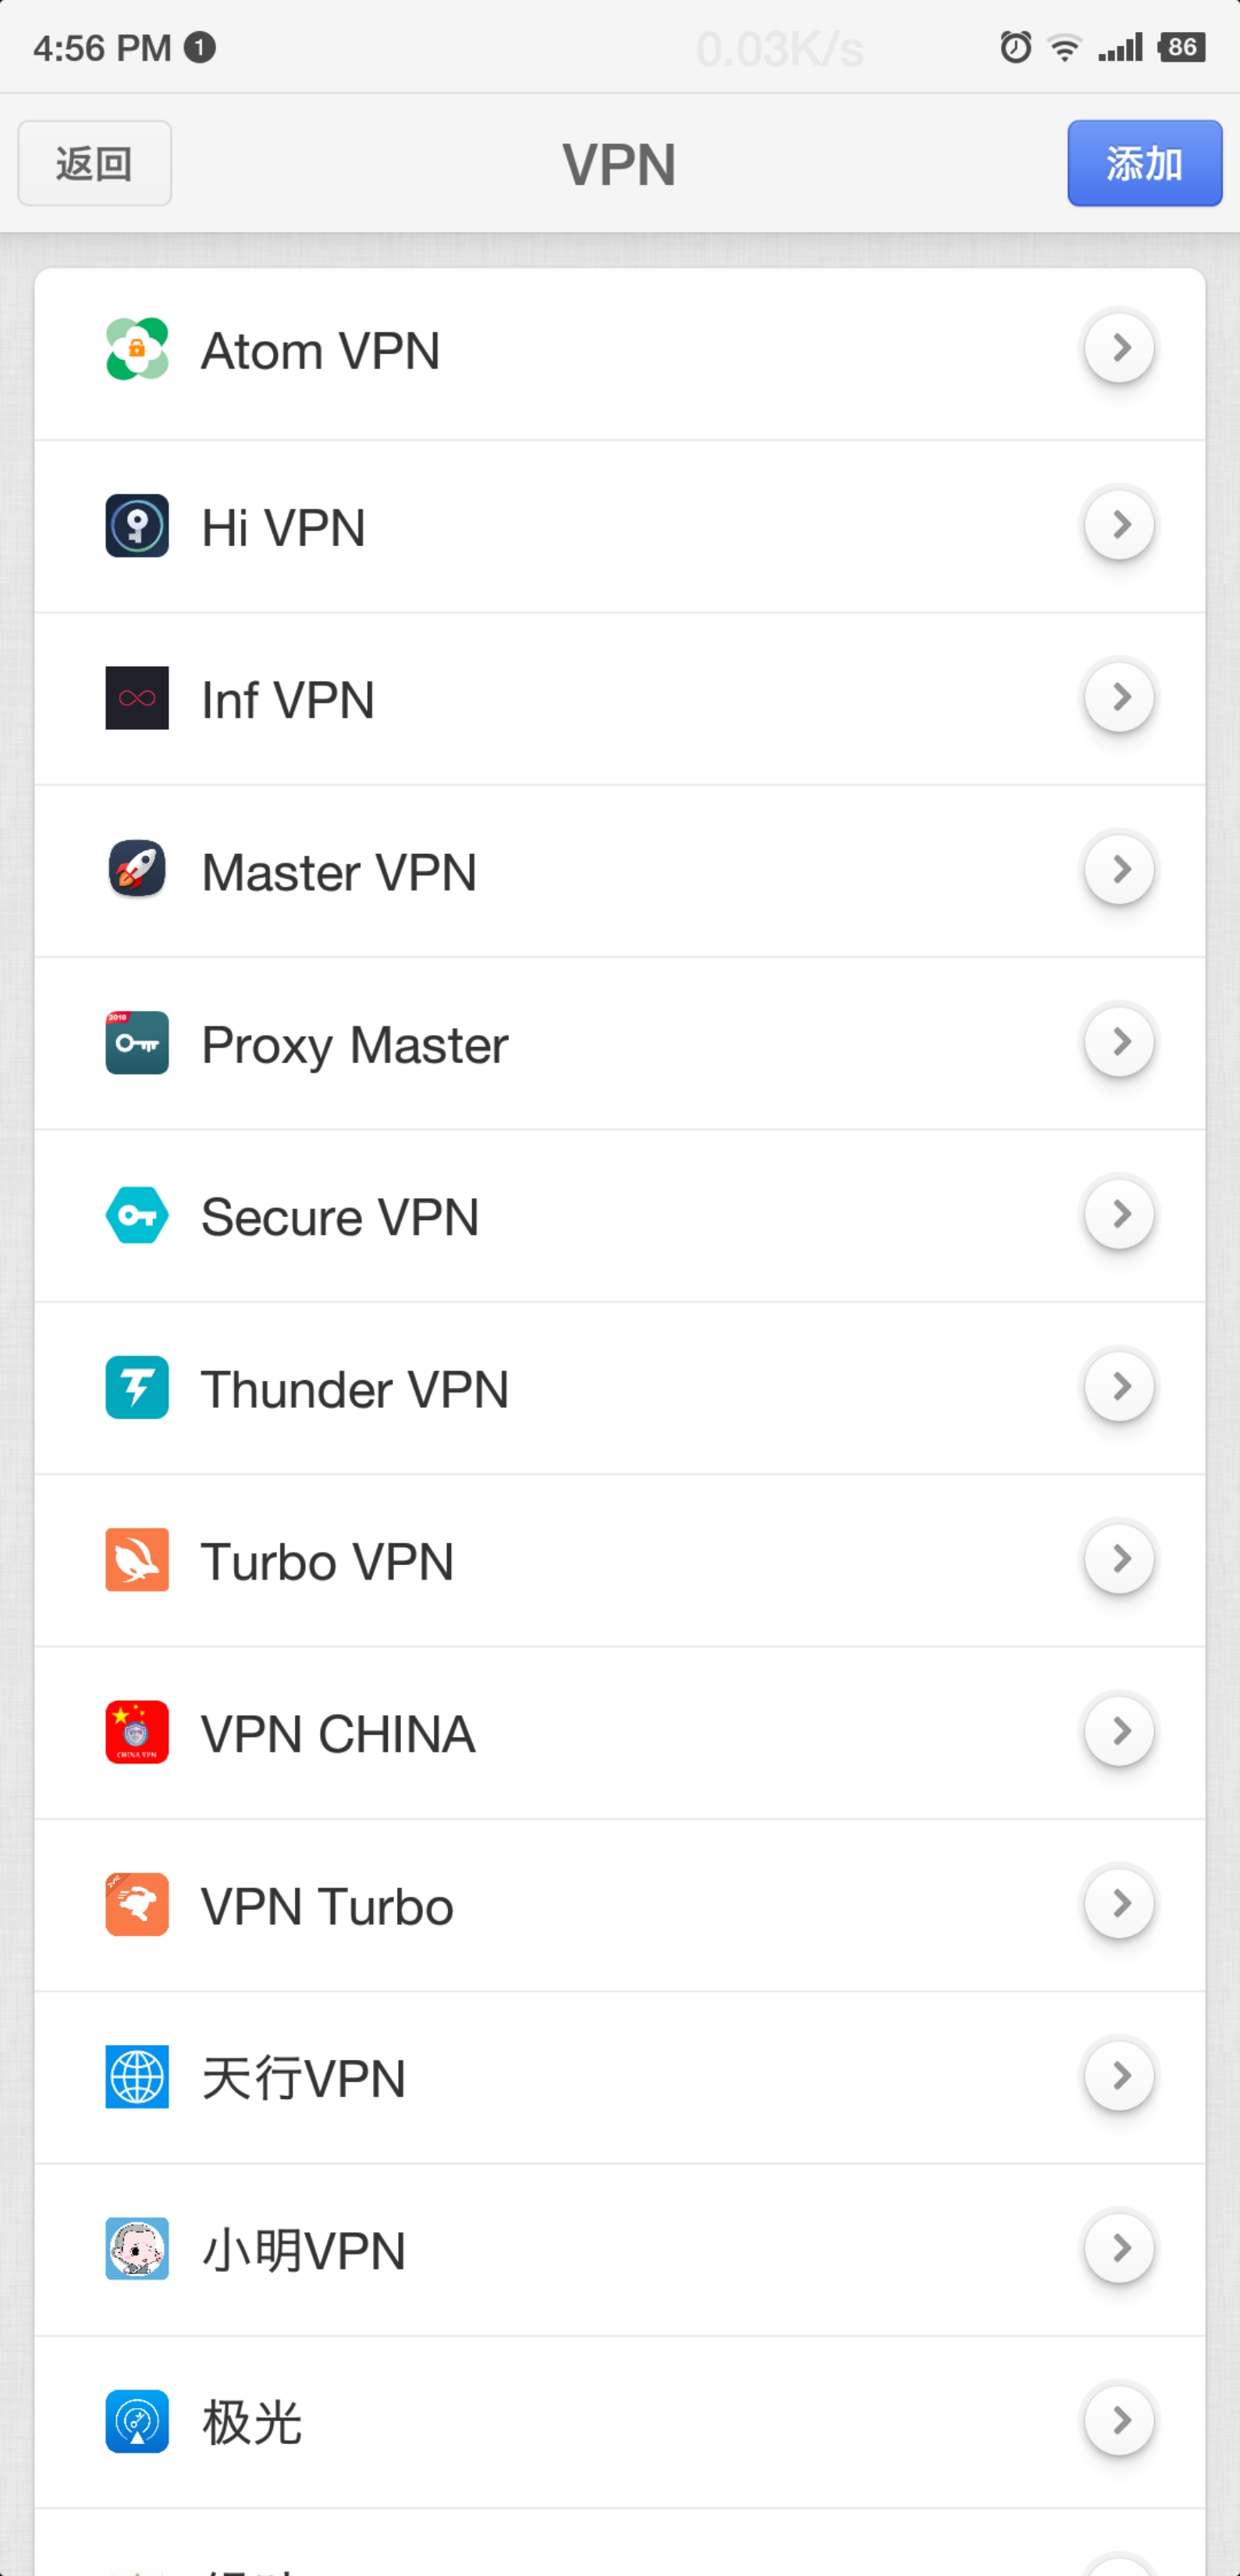 Screenshot_2018-07-05-16-56-31-034_VPN.png